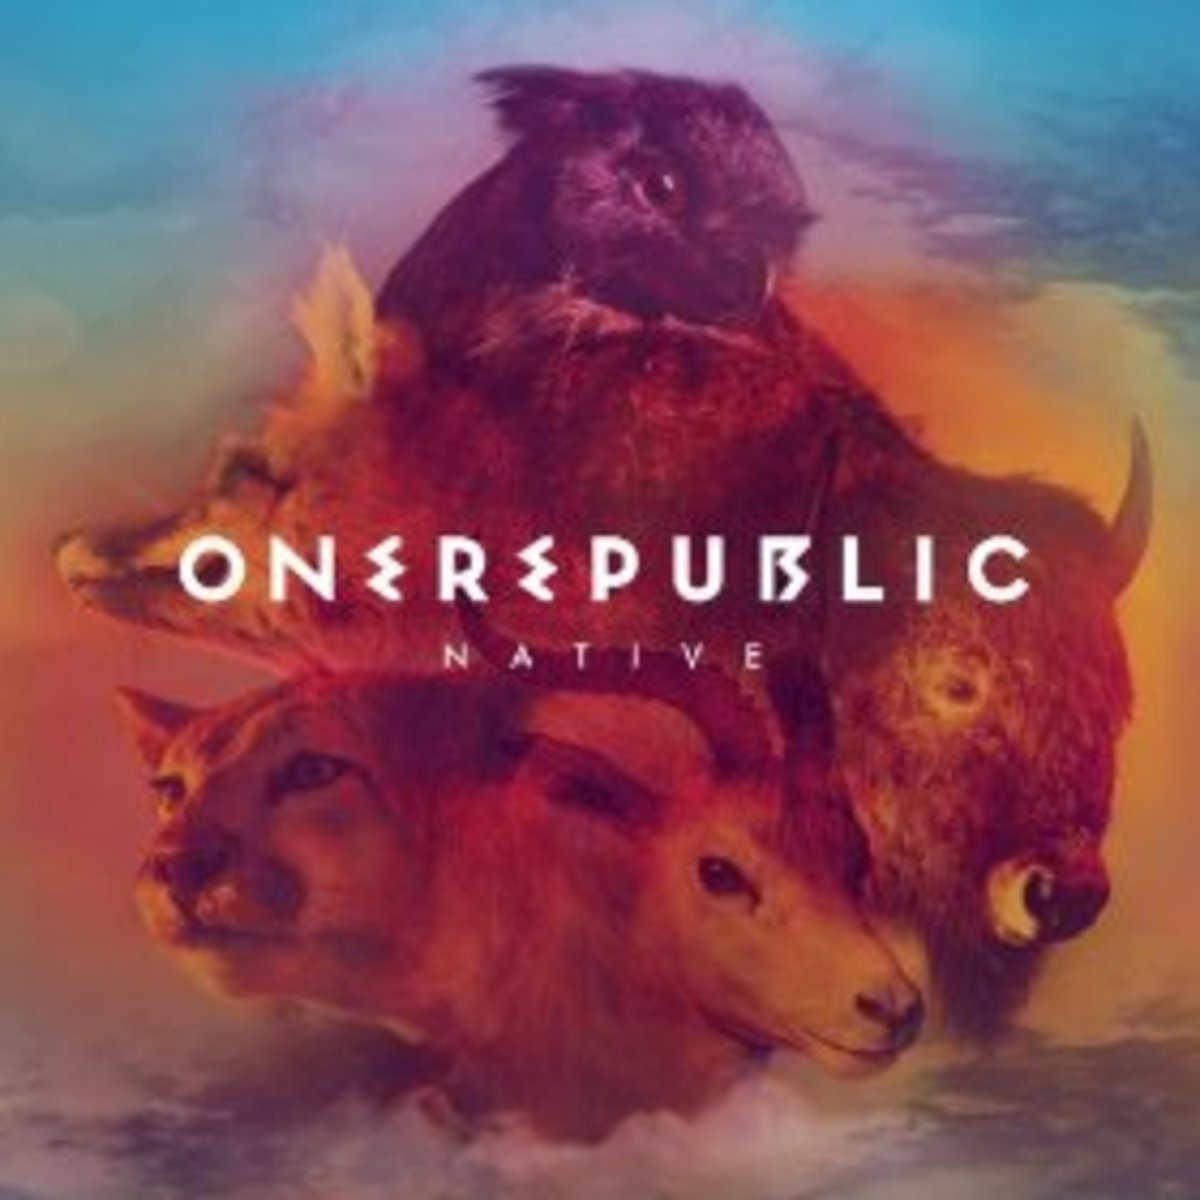 OneRepublic songs: